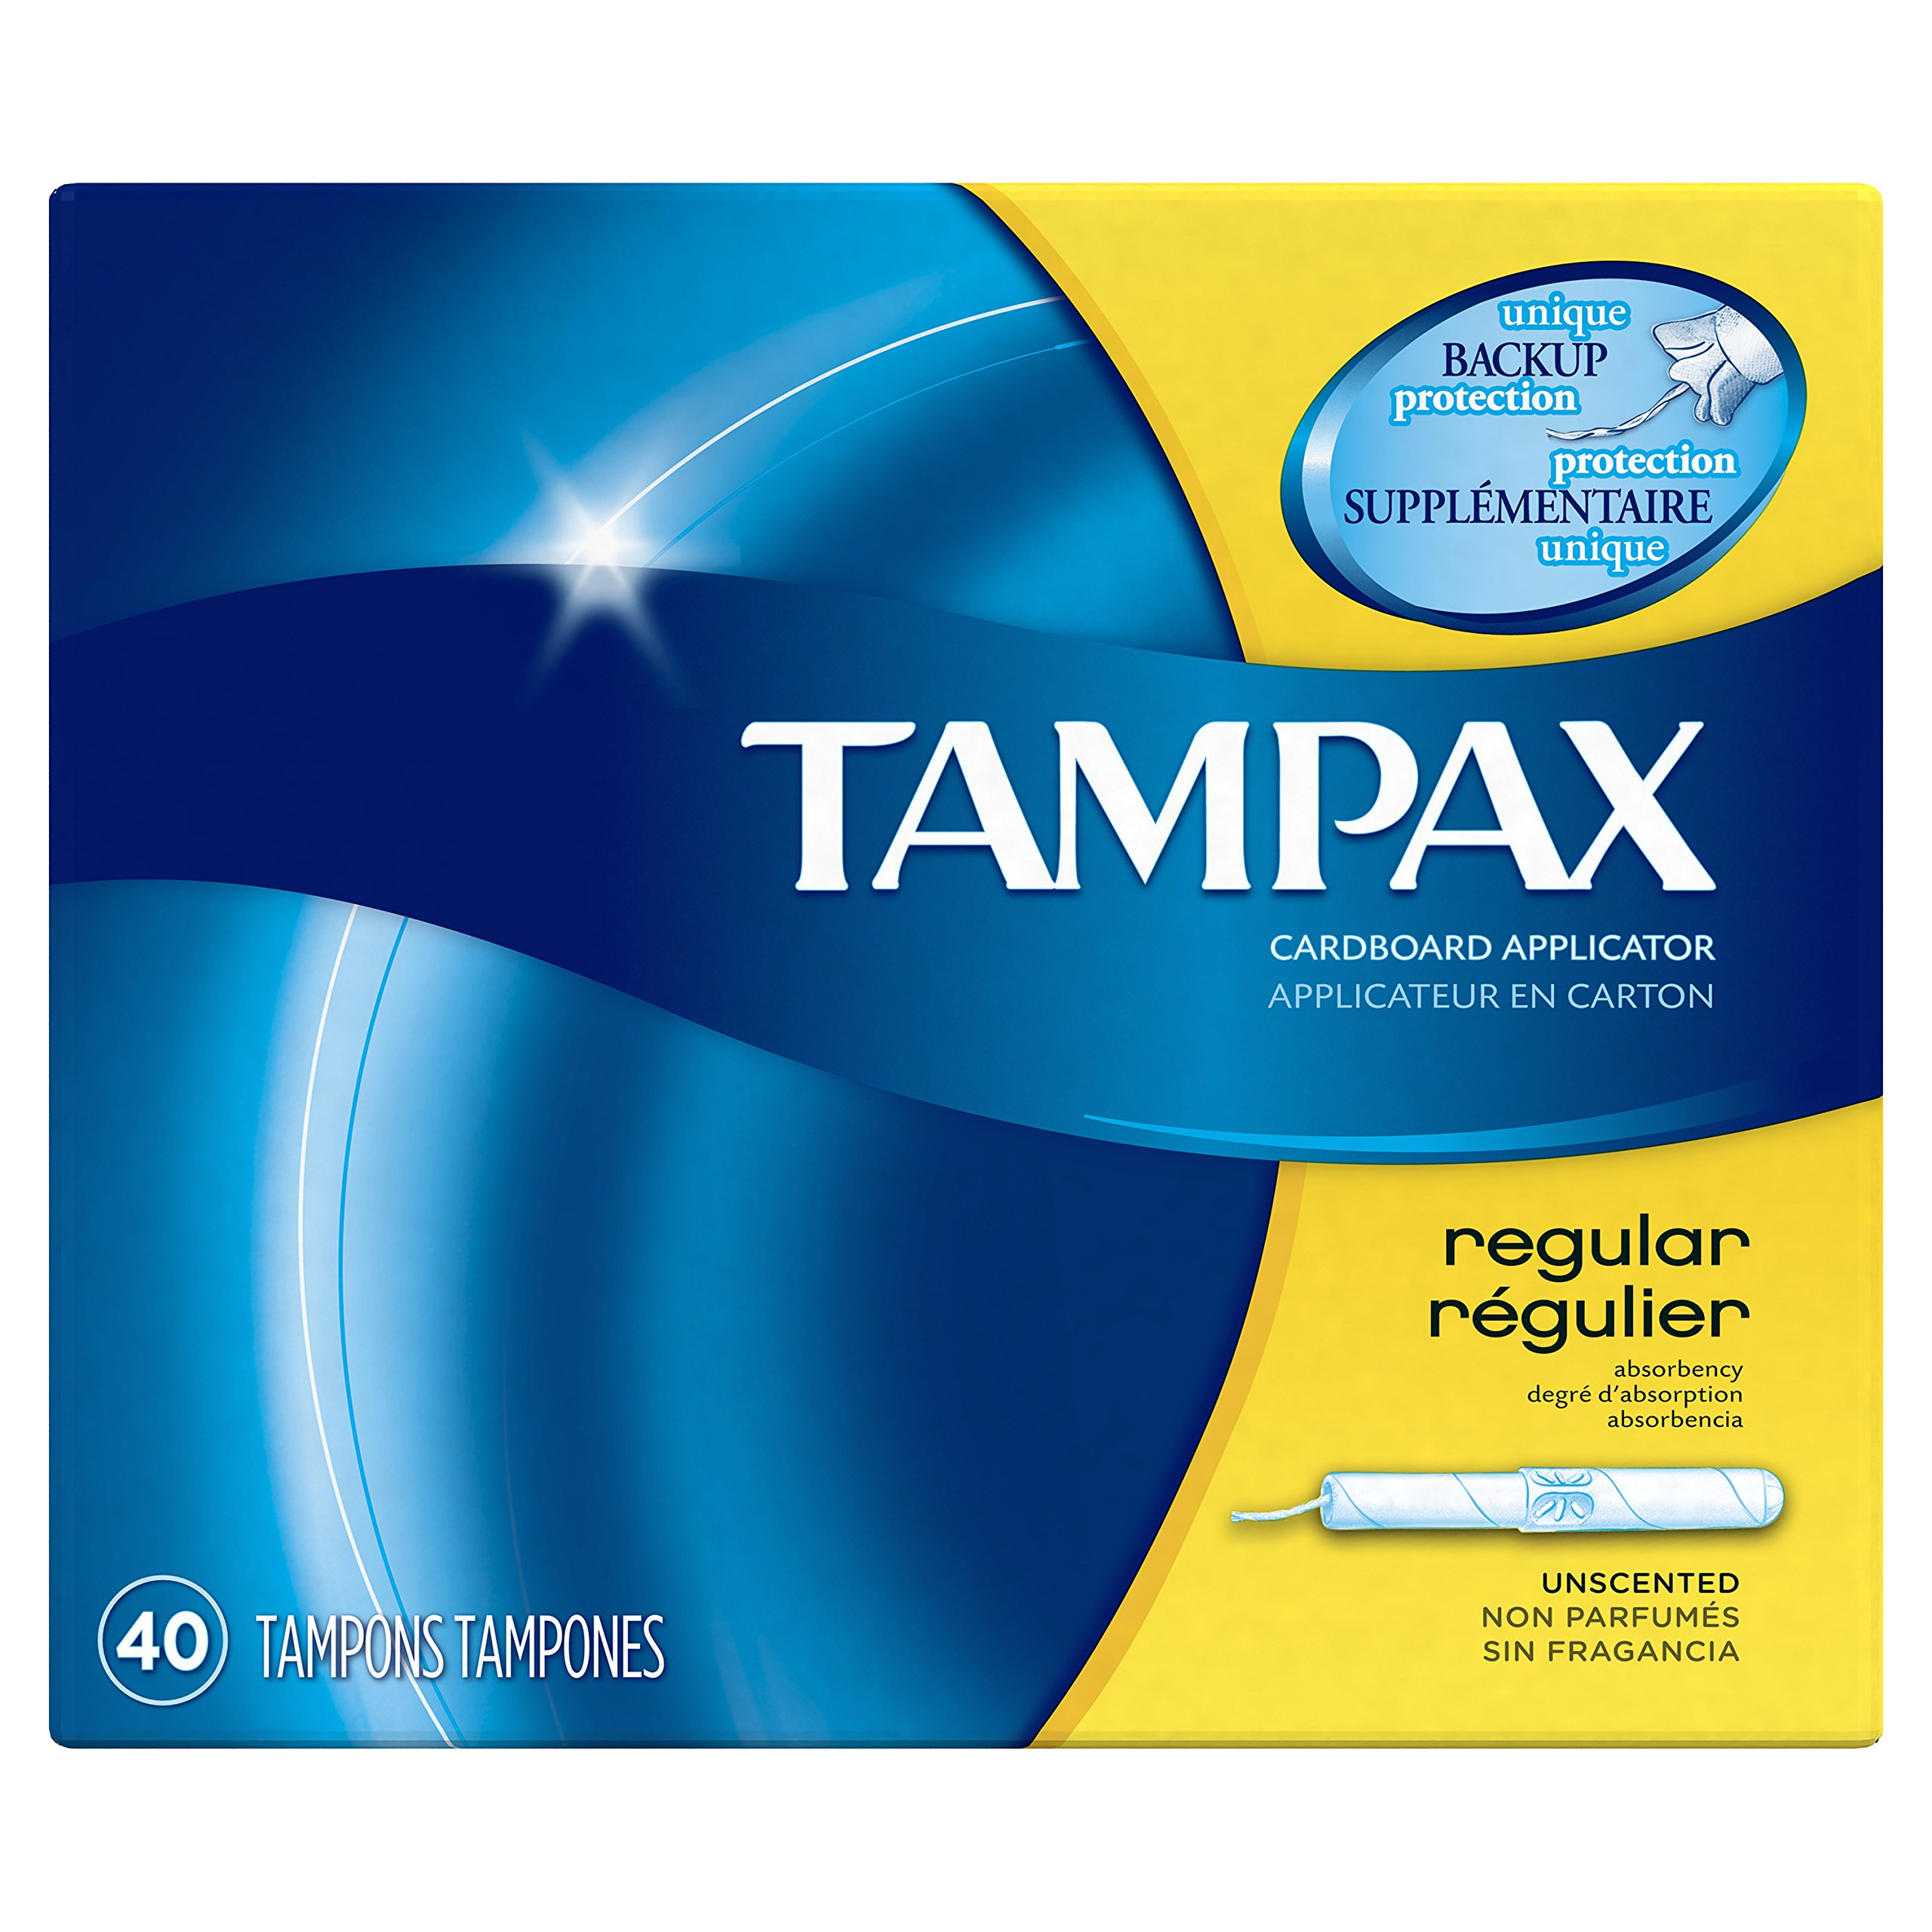 Tampax 12 Boxes Regular Absorbency Cardboard Tampons, Unscented, 480 Count